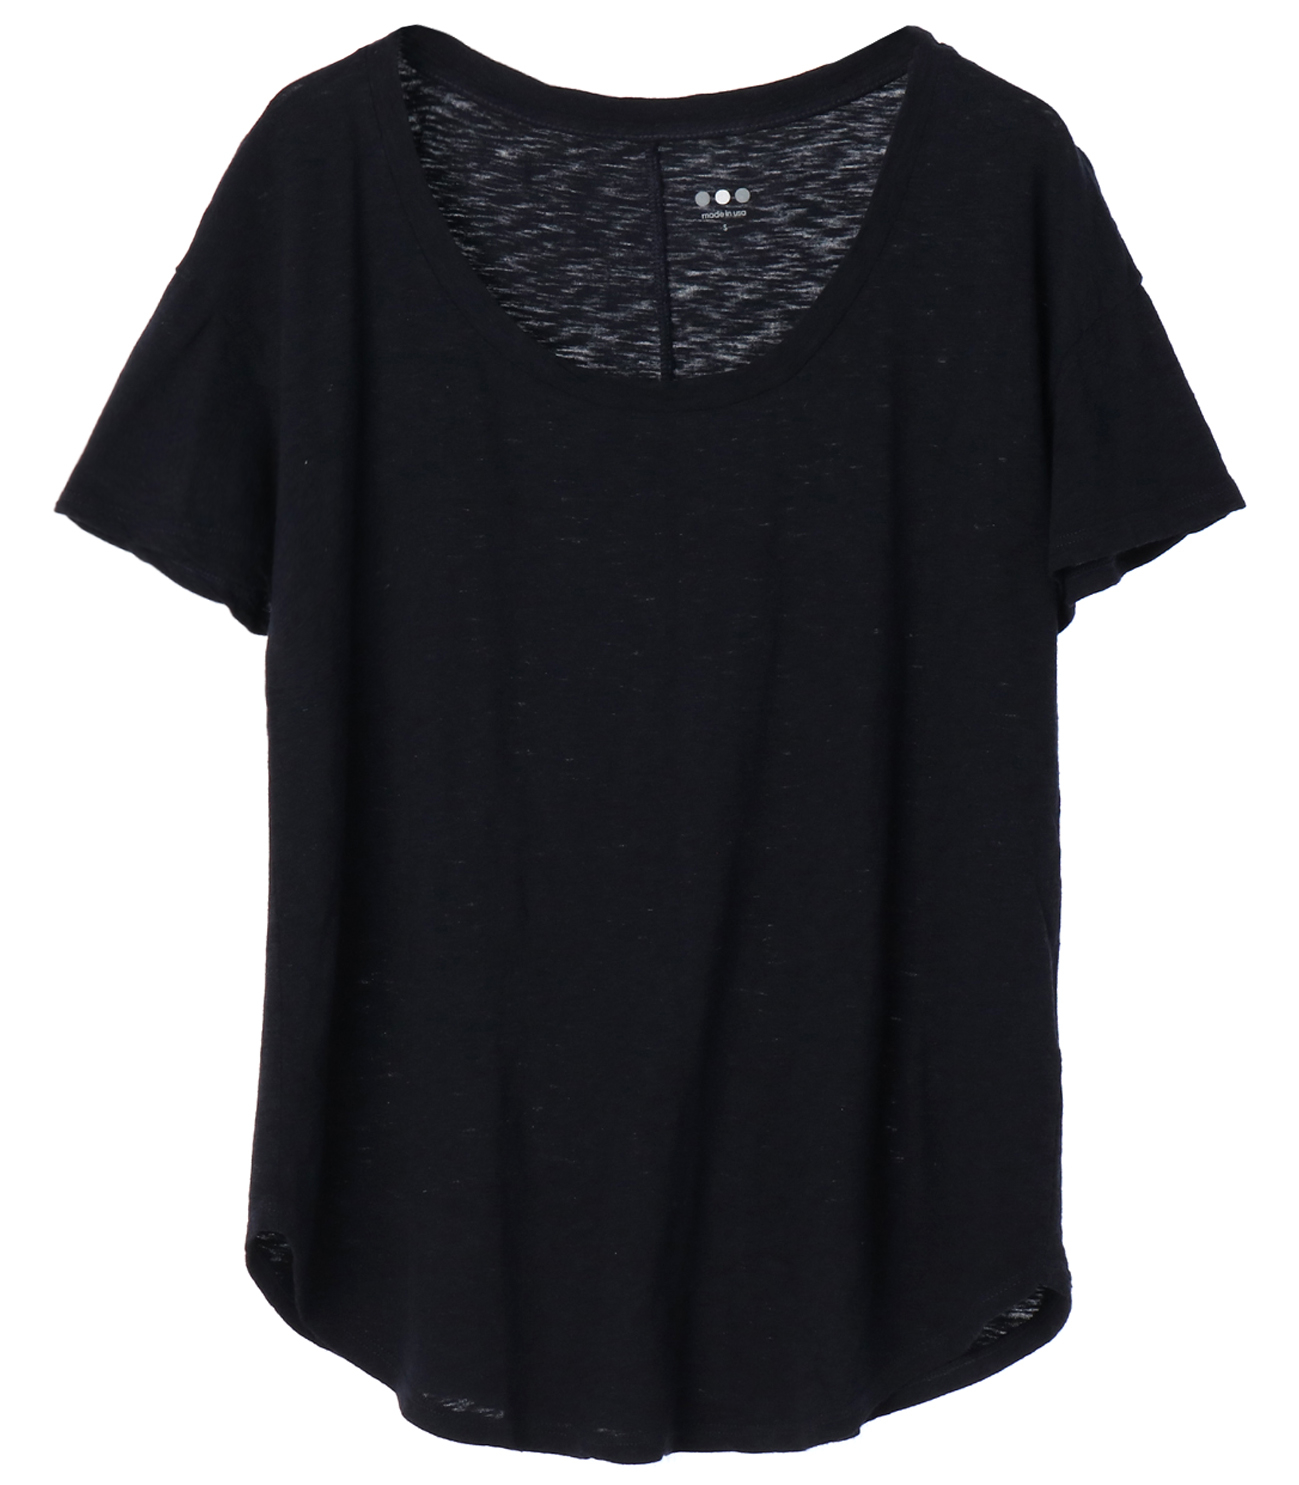 eco knit basic scoop neck tee 詳細画像 night iris